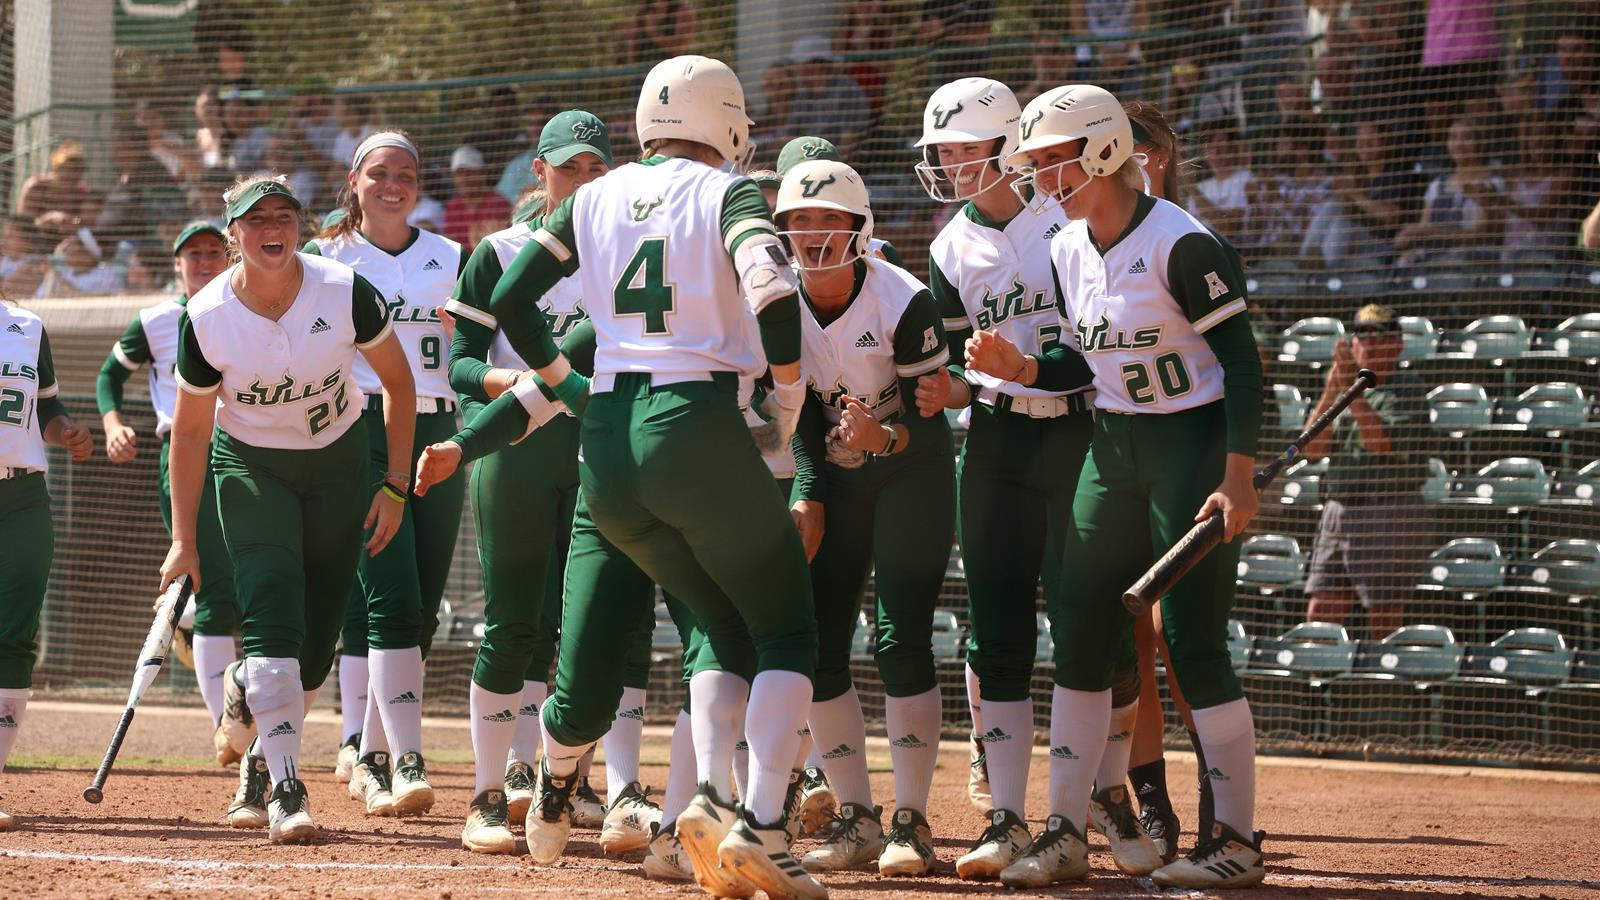 Bruni Powers Bulls to Victory with First Career Home Run - USF Athletics